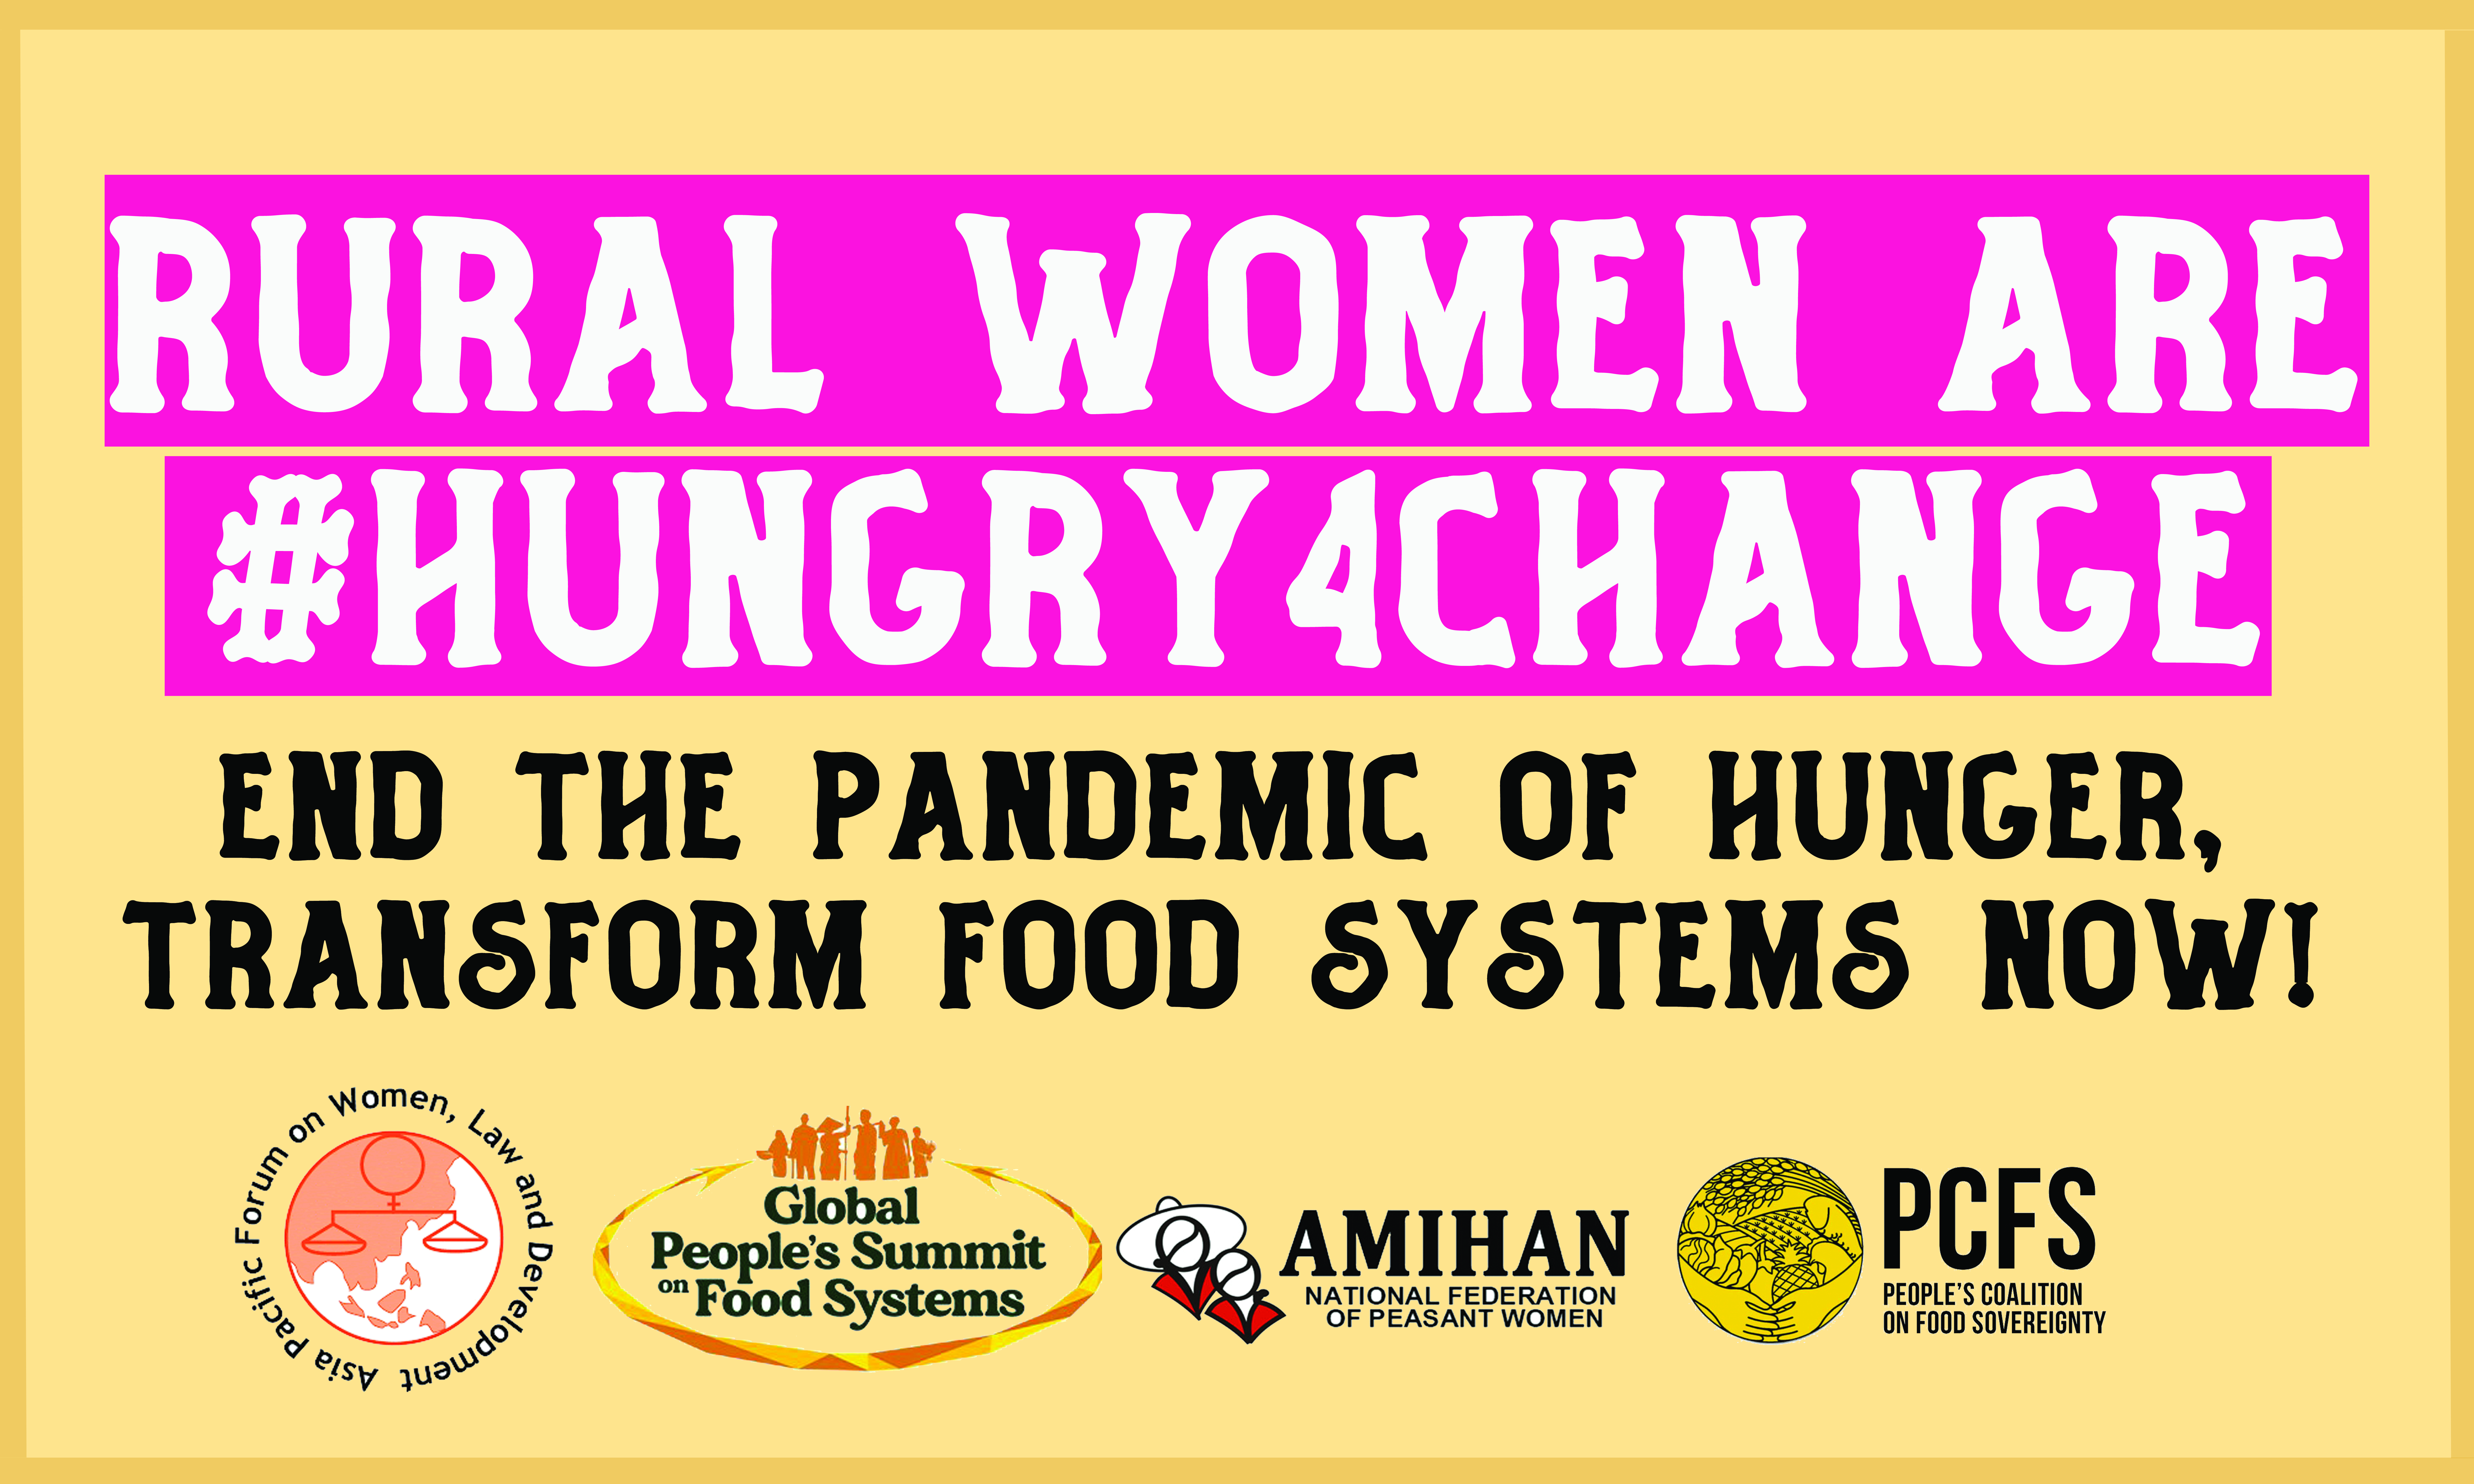 Rural Women are #Hungry4change   End the pandemic hunger, transform food systems now